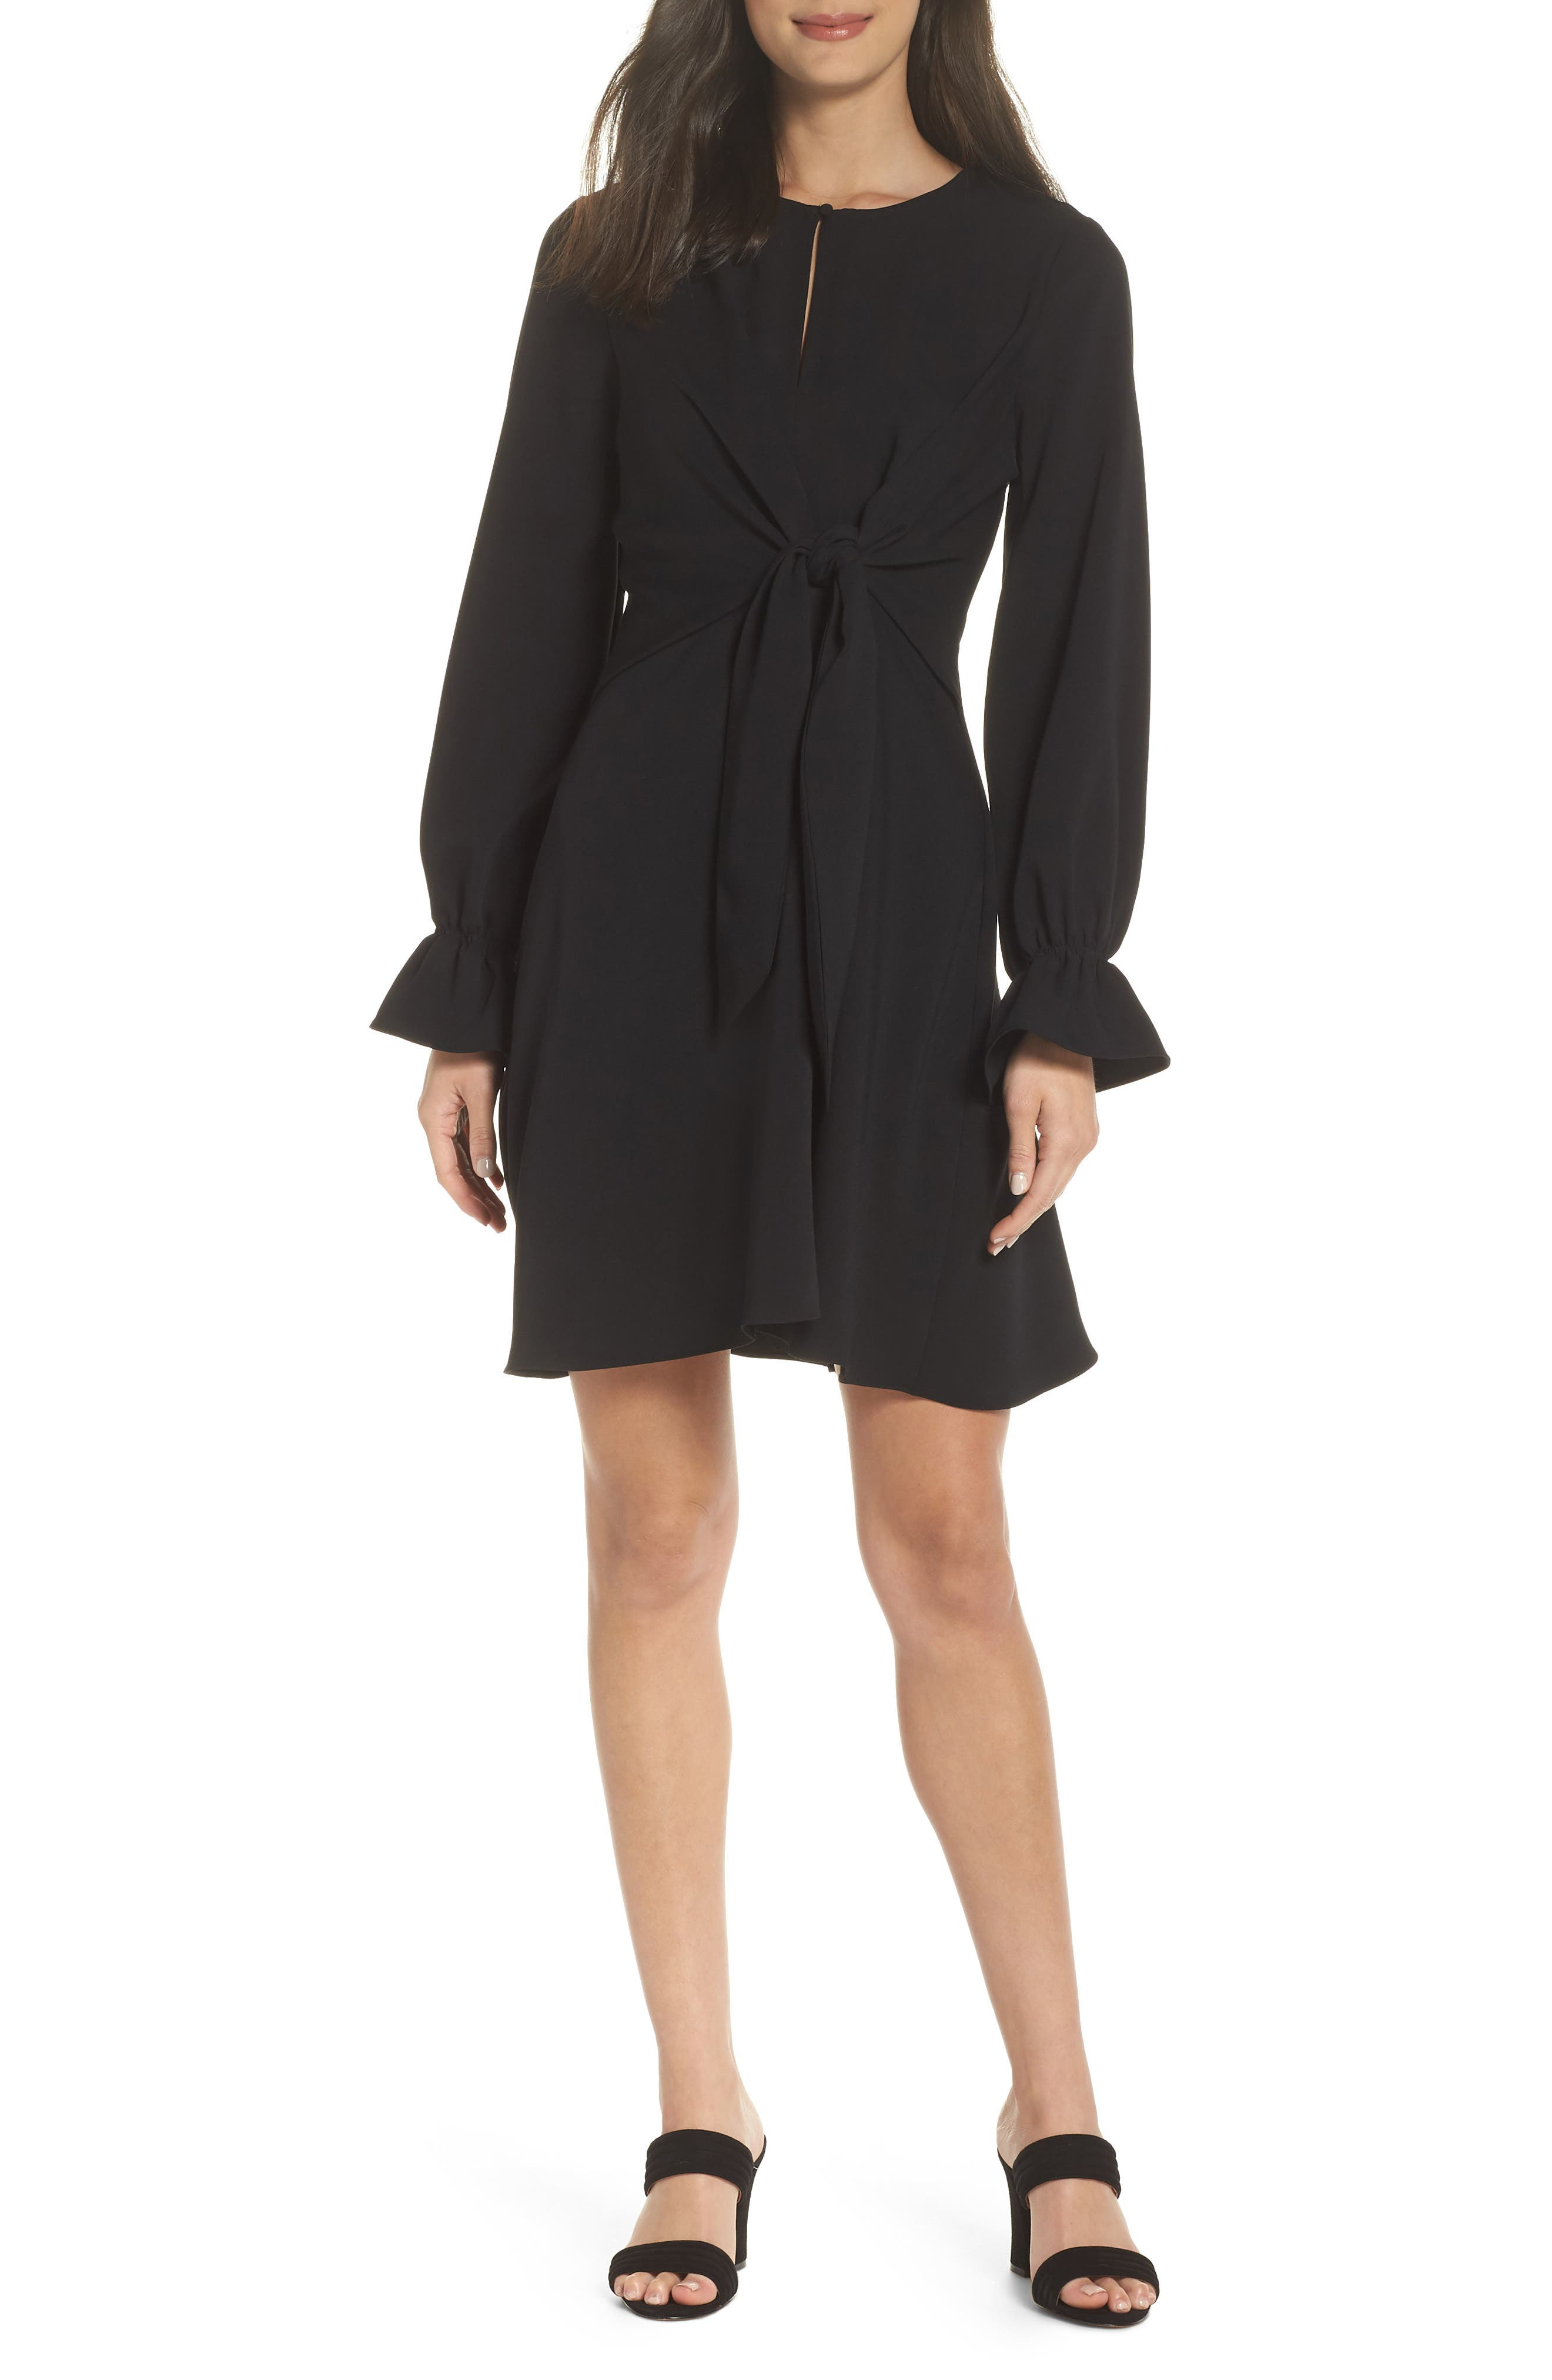 Sam Edelman Tie Knot Fit & Flare Dress, Black